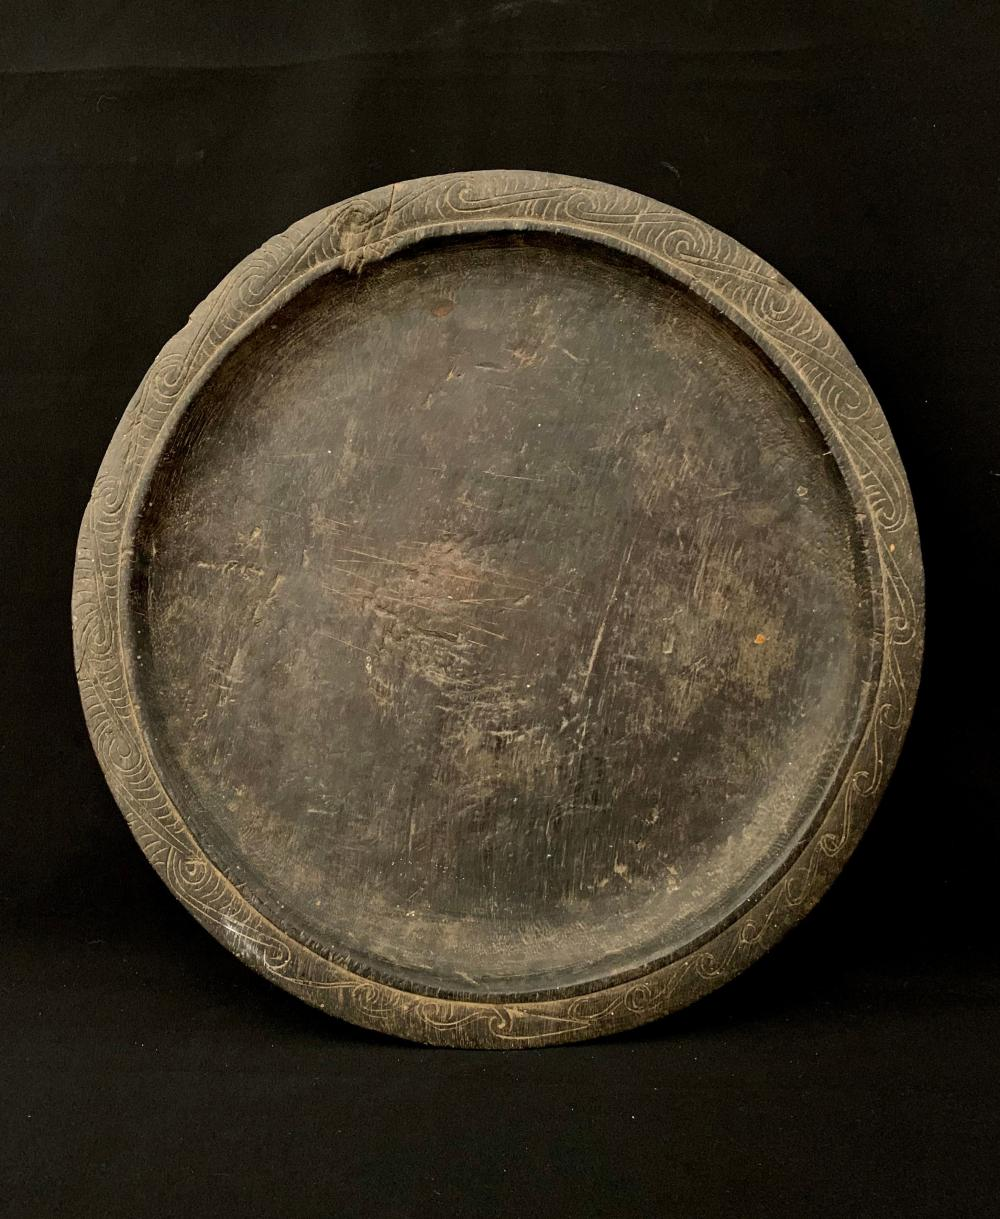 A Wooden Platter, Louisades, Milne Bay, Papua New Guinea